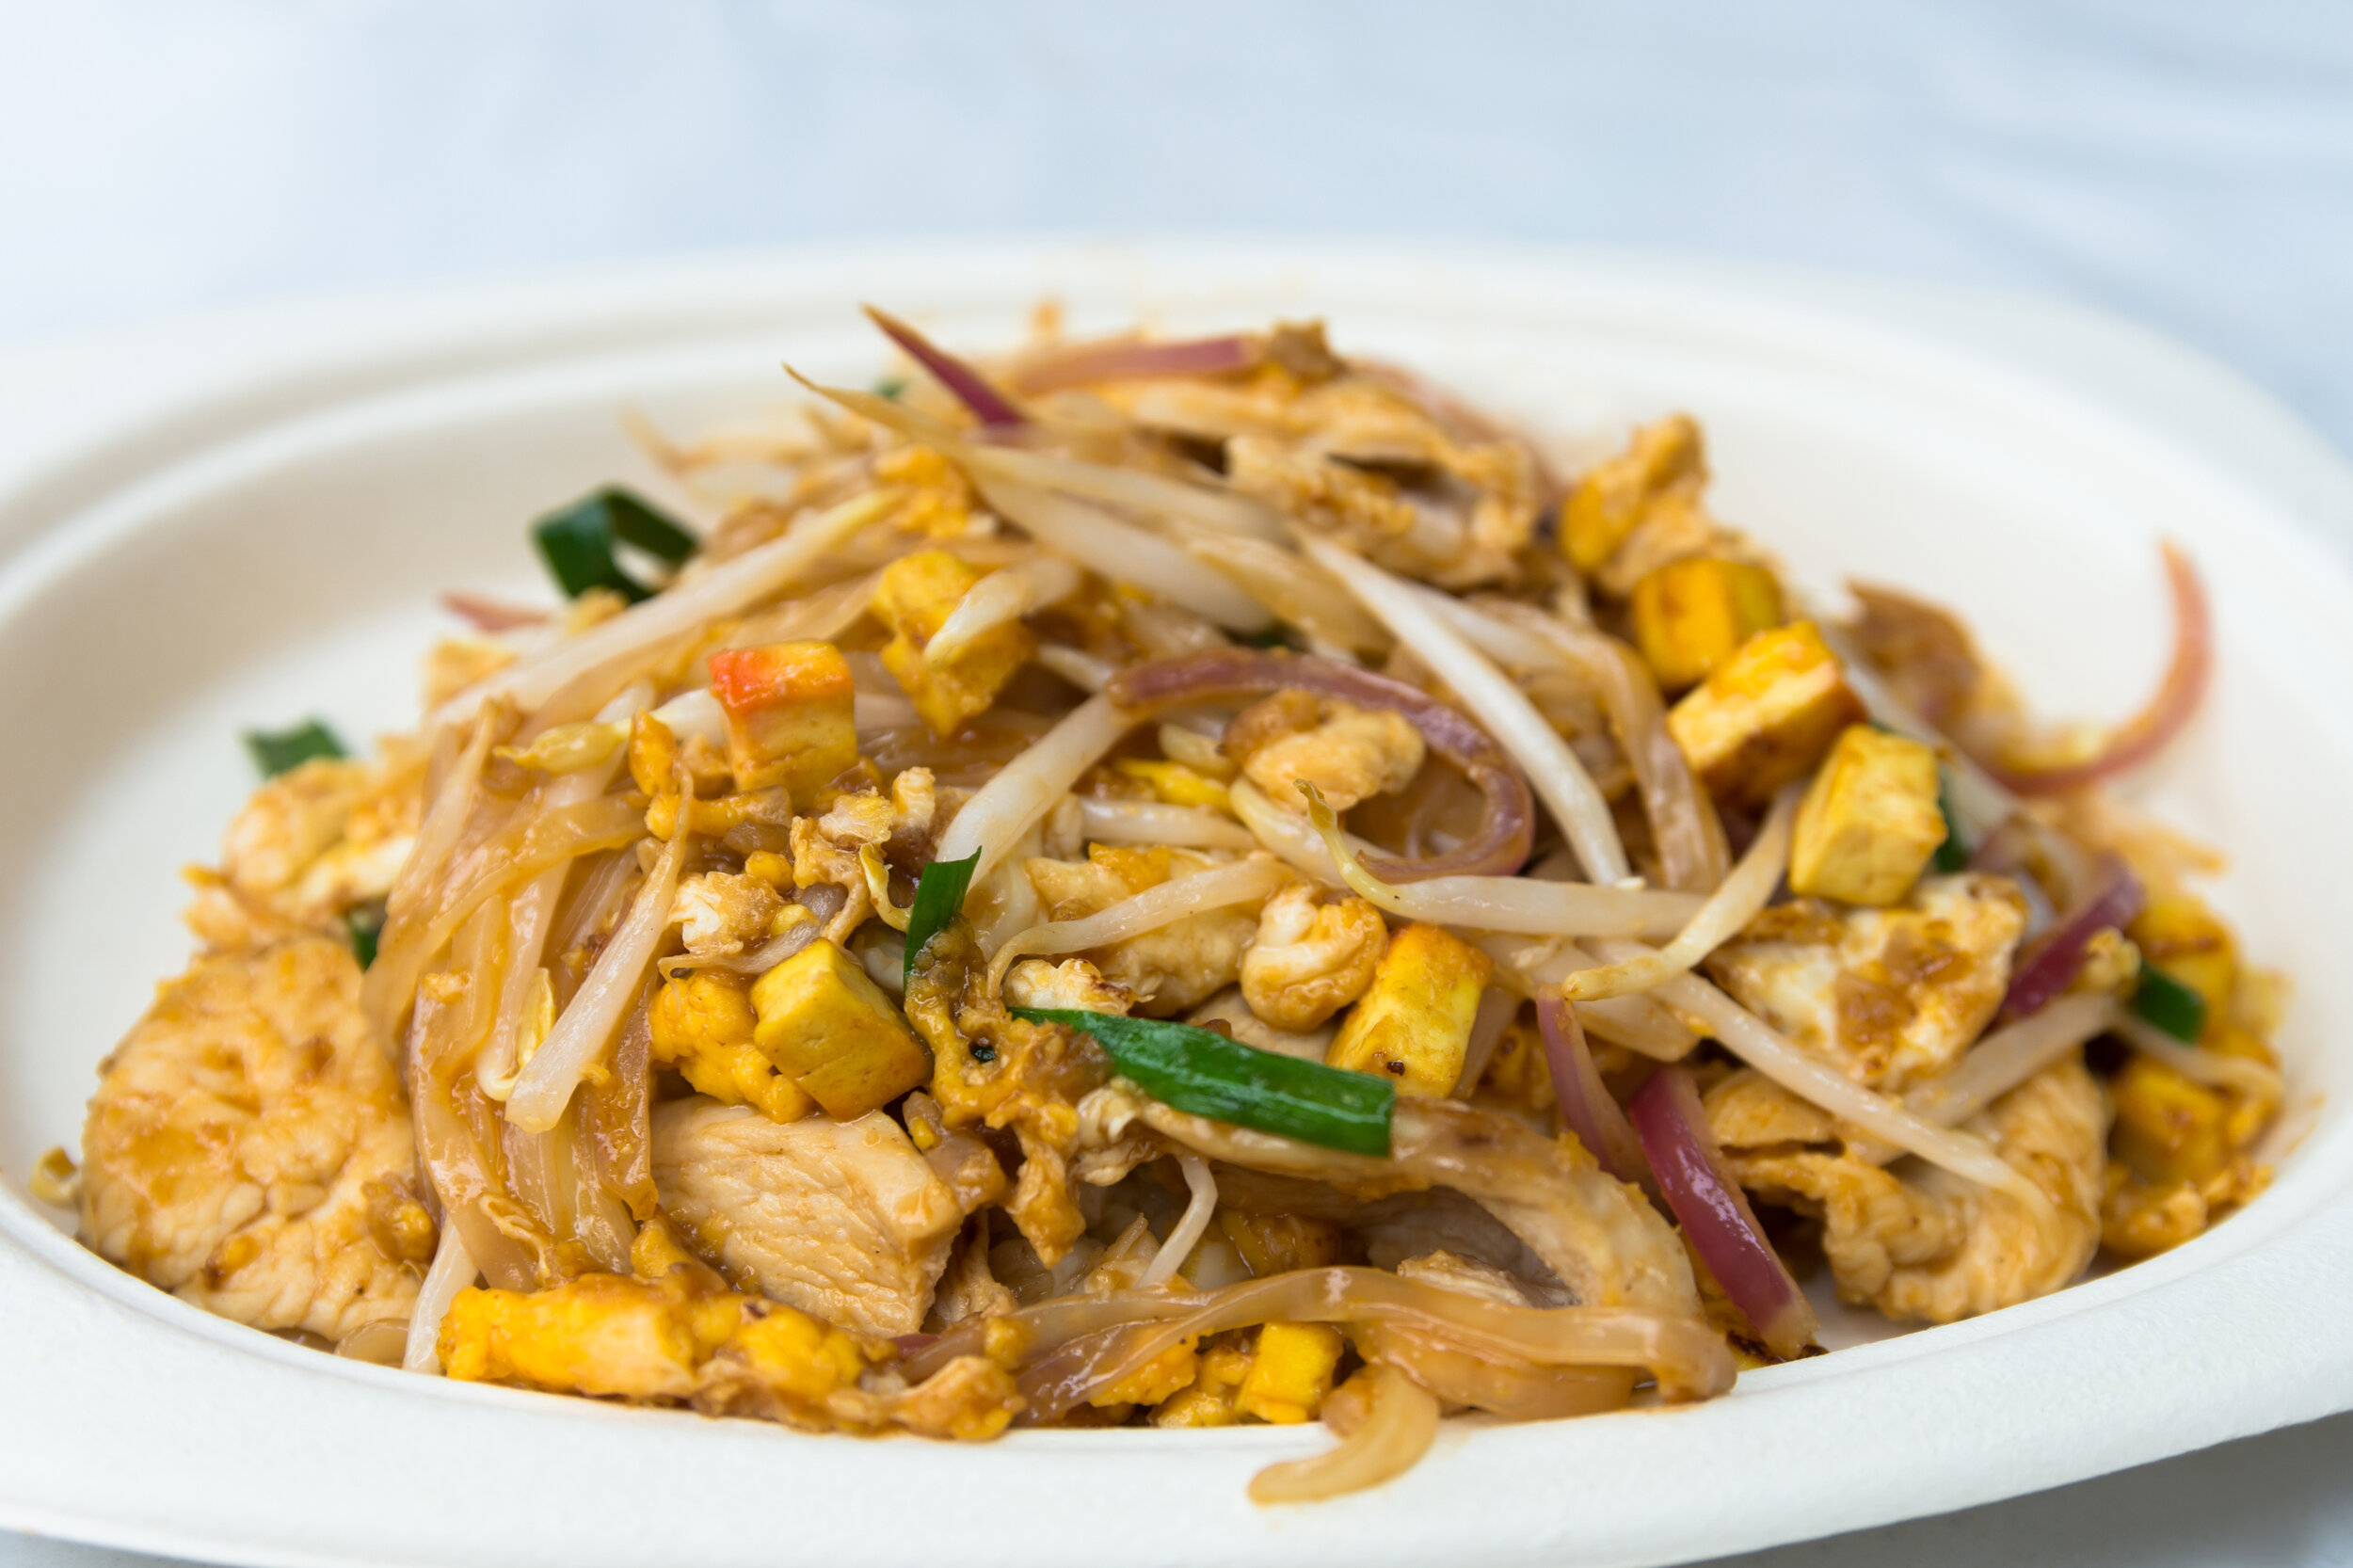 Pad Thai, the most famous food in Bangkok